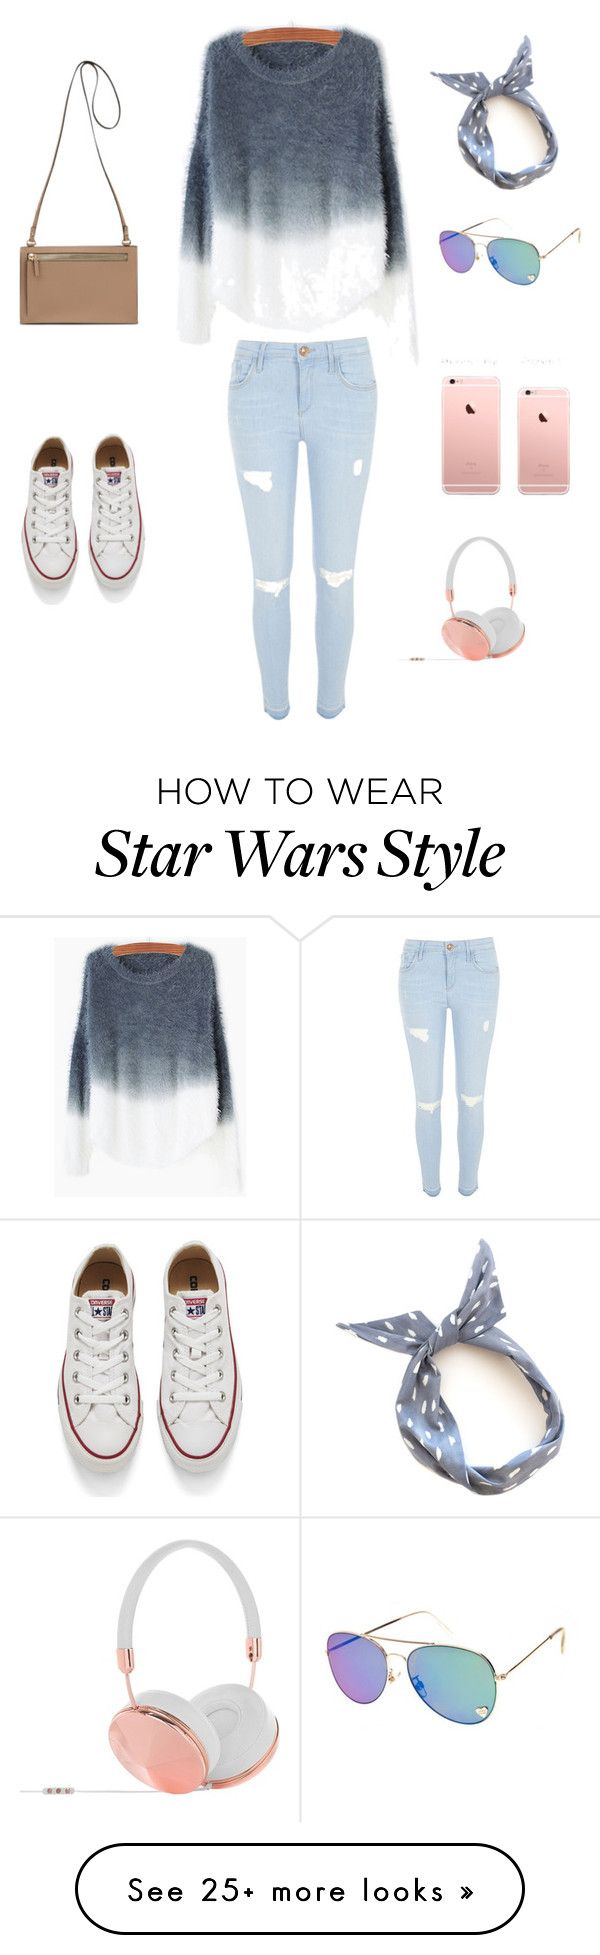 Untitled #82 by licihinds on Polyvore featuring River Island, Converse, Frends, women's clothing, women's fashion, women, female, woman, misses and juniors